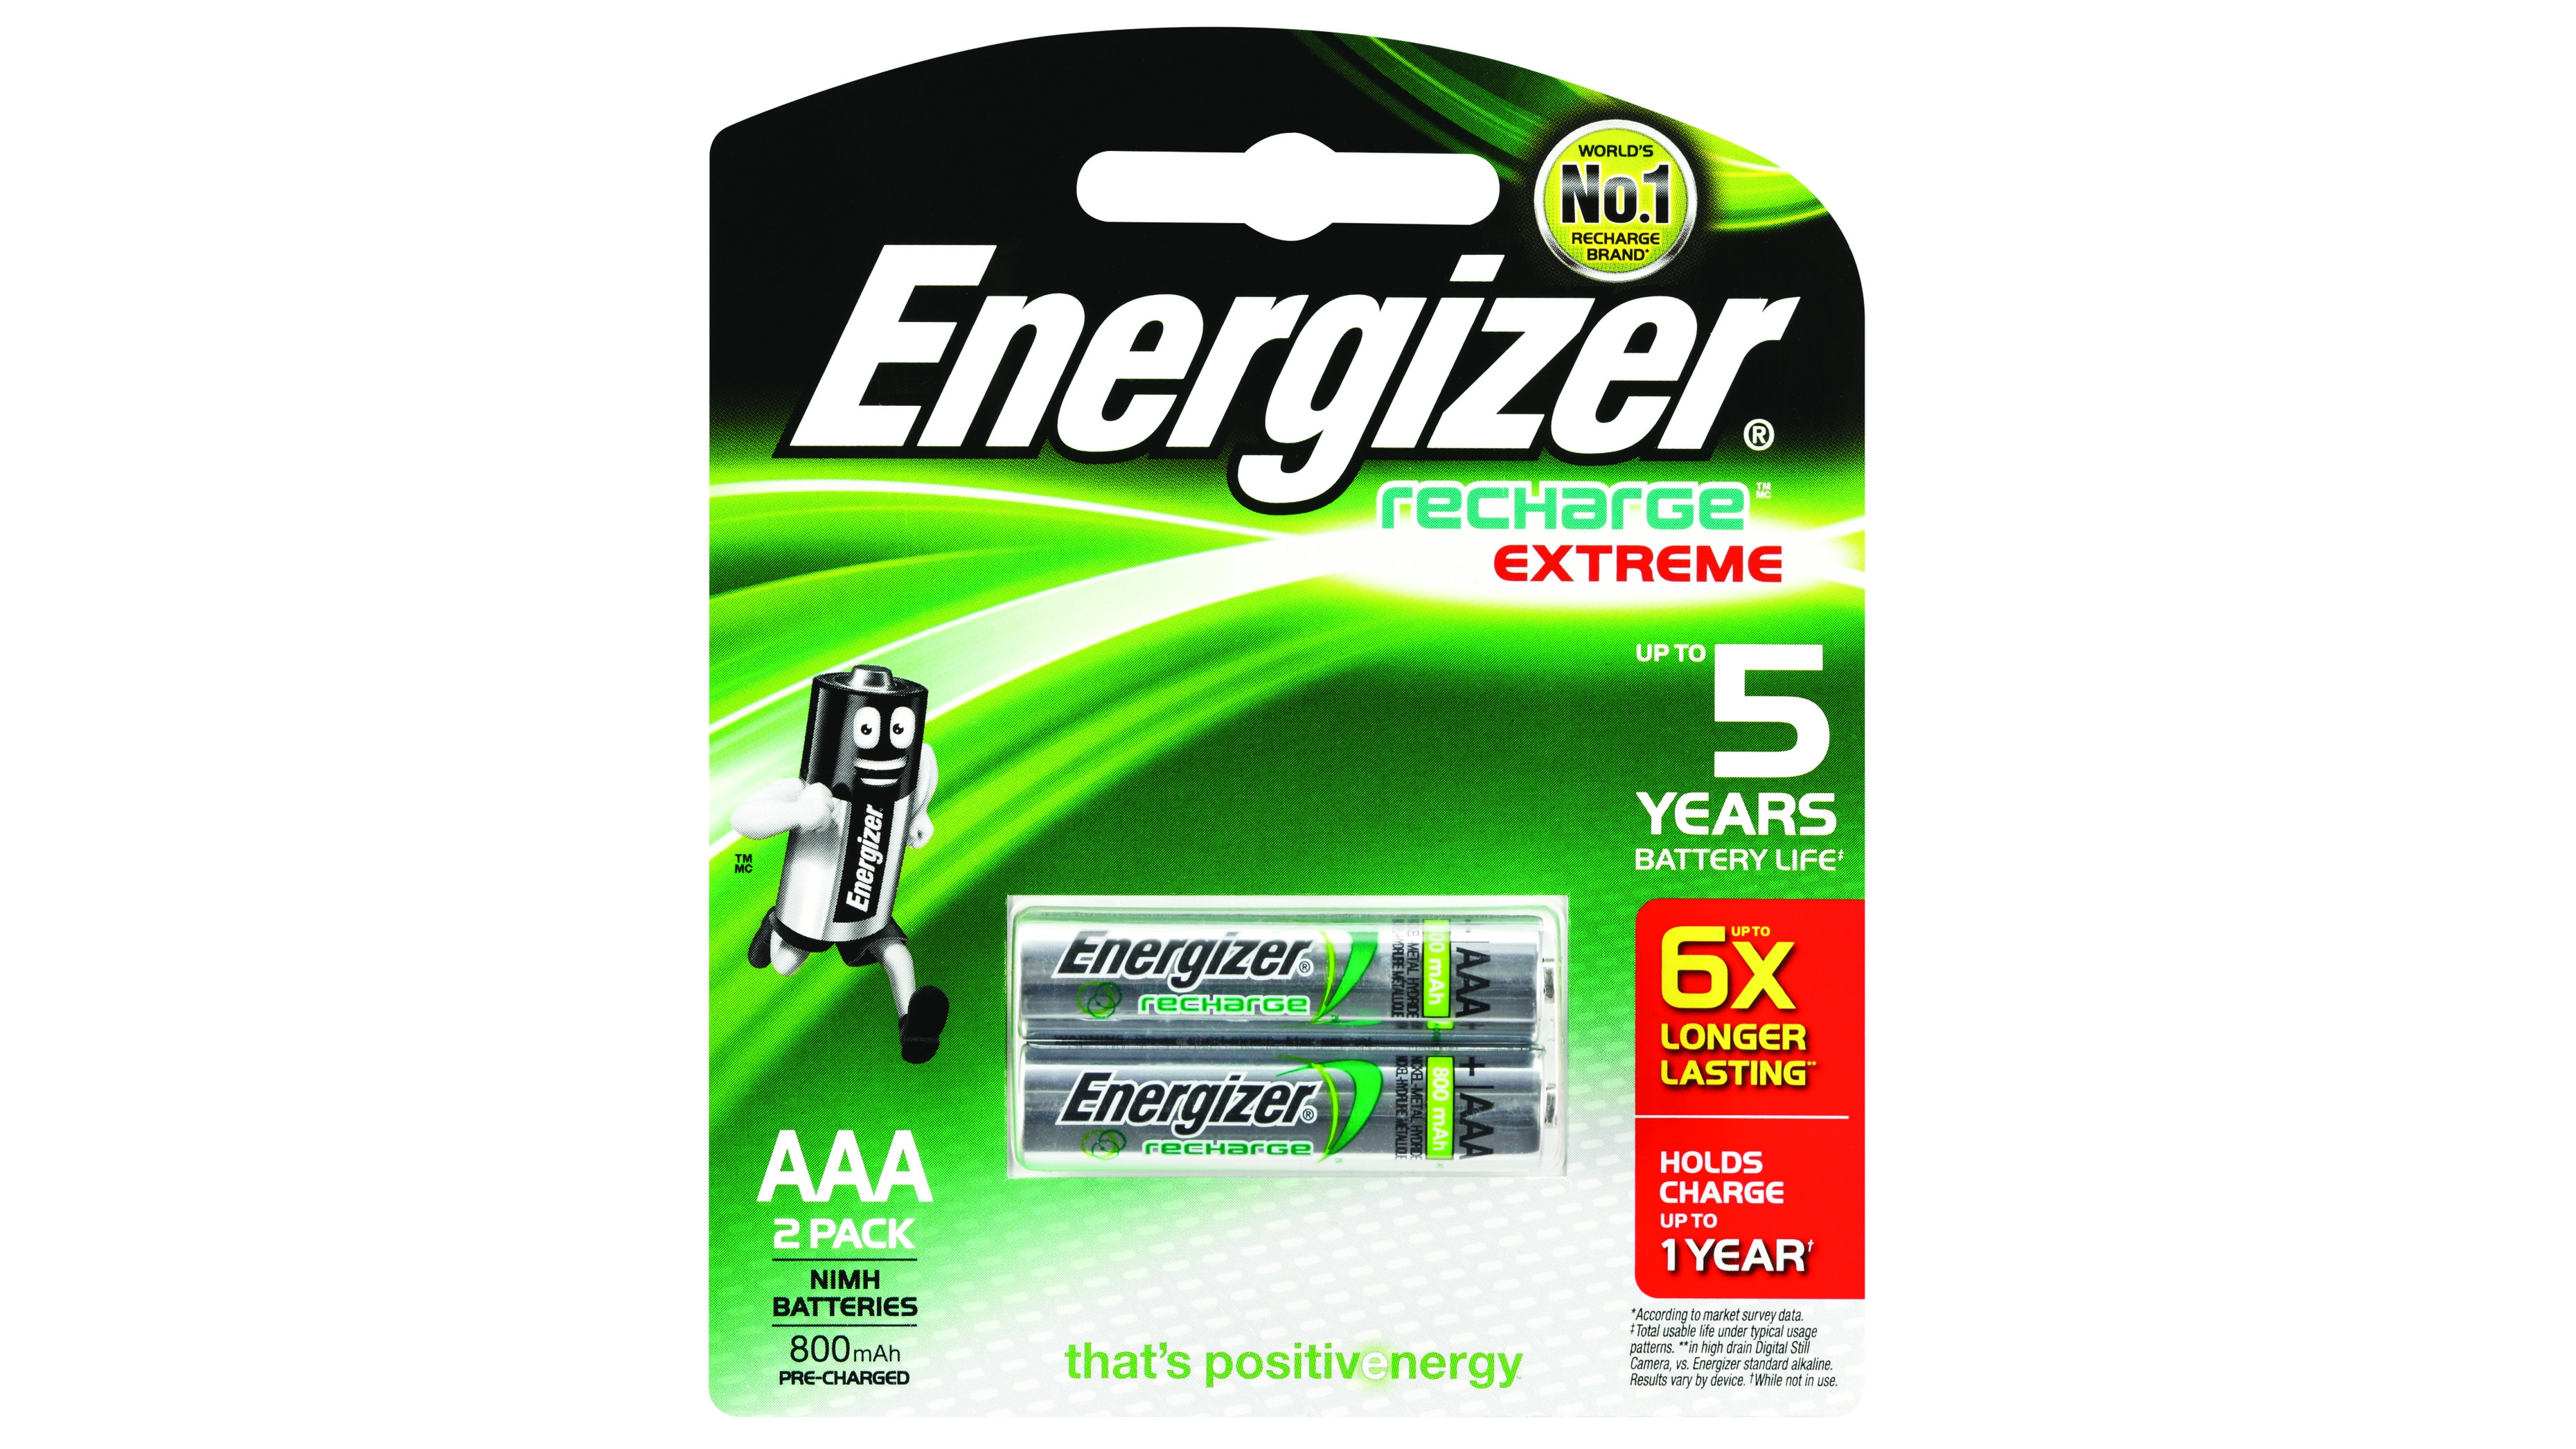 Energizer Recharge AAA Batteries - 2 Pack : Domayne